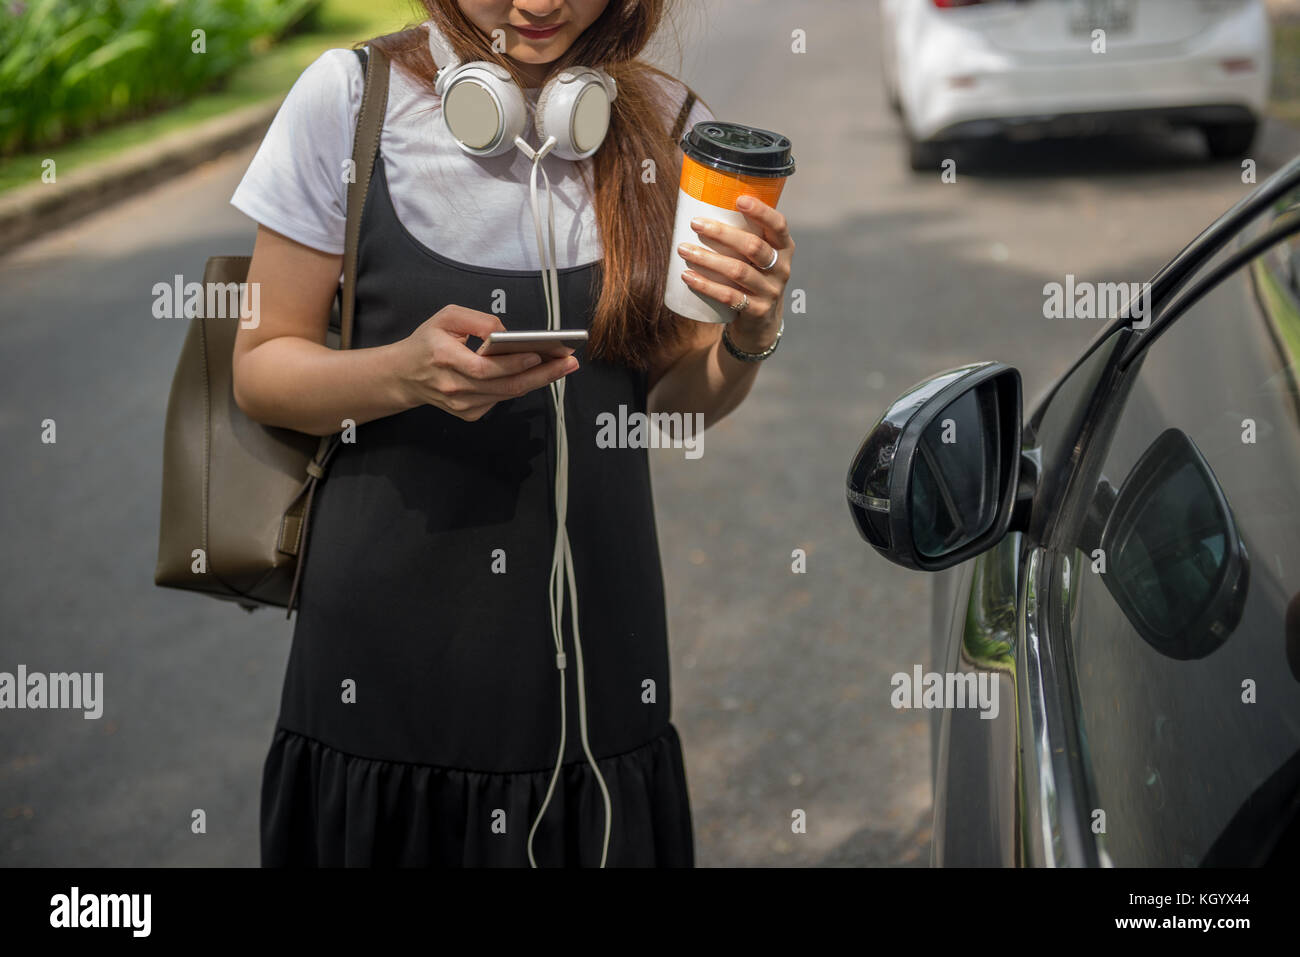 Modern woman texting on smart phone outdoor - Stock Image